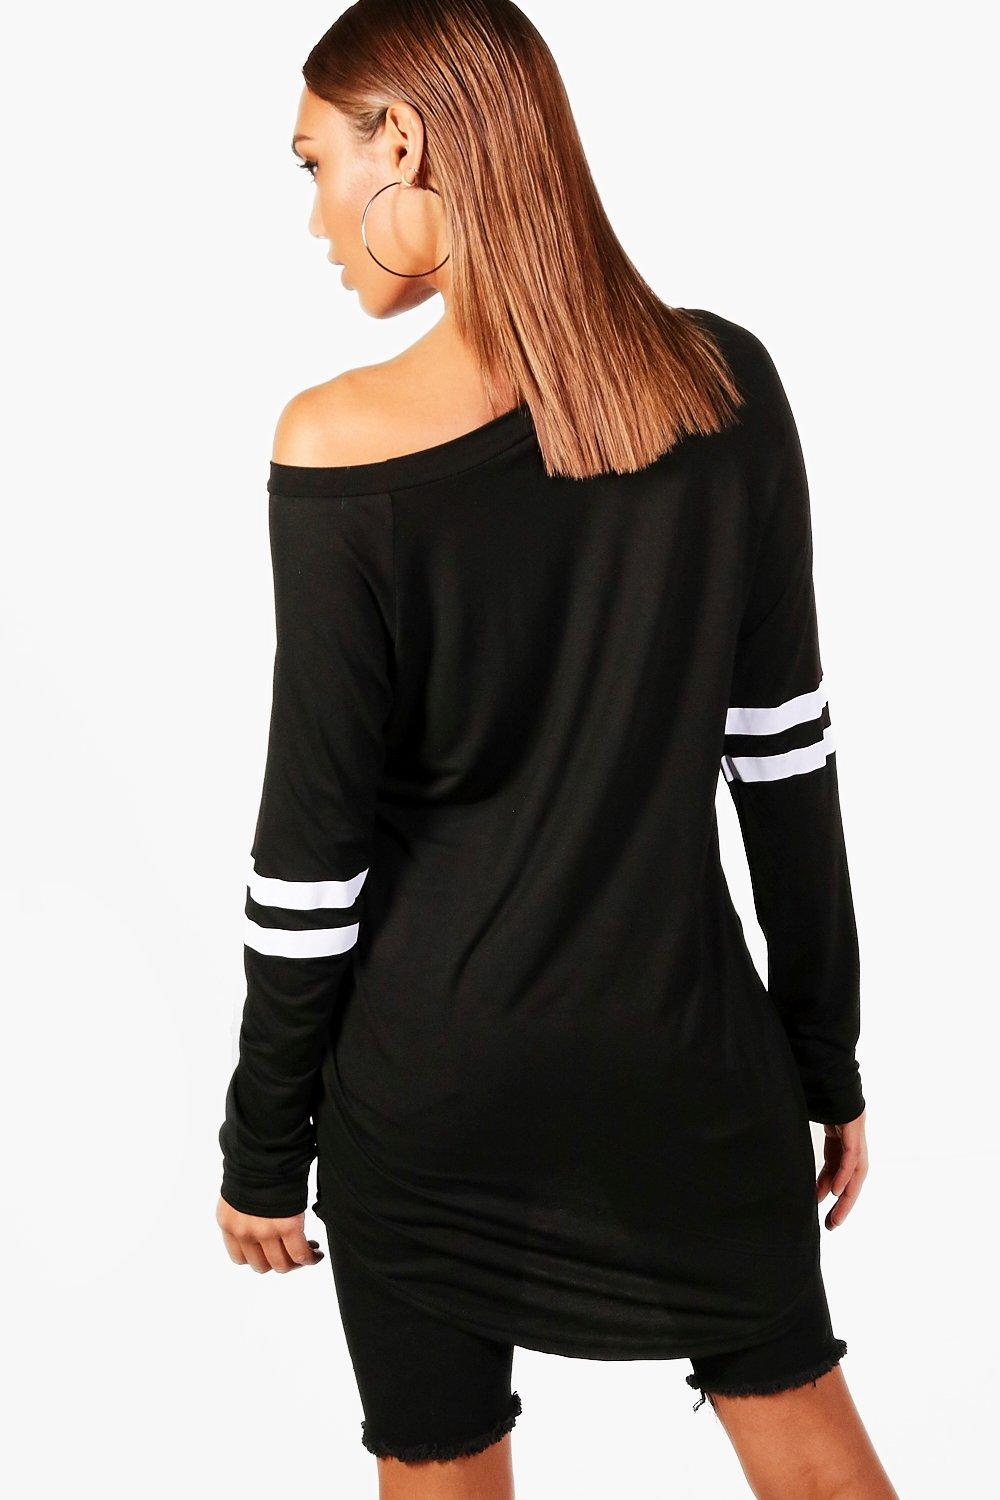 Find women long sleeve tunics at ShopStyle. Shop the latest collection of women long sleeve tunics from the most popular stores - all in one place.